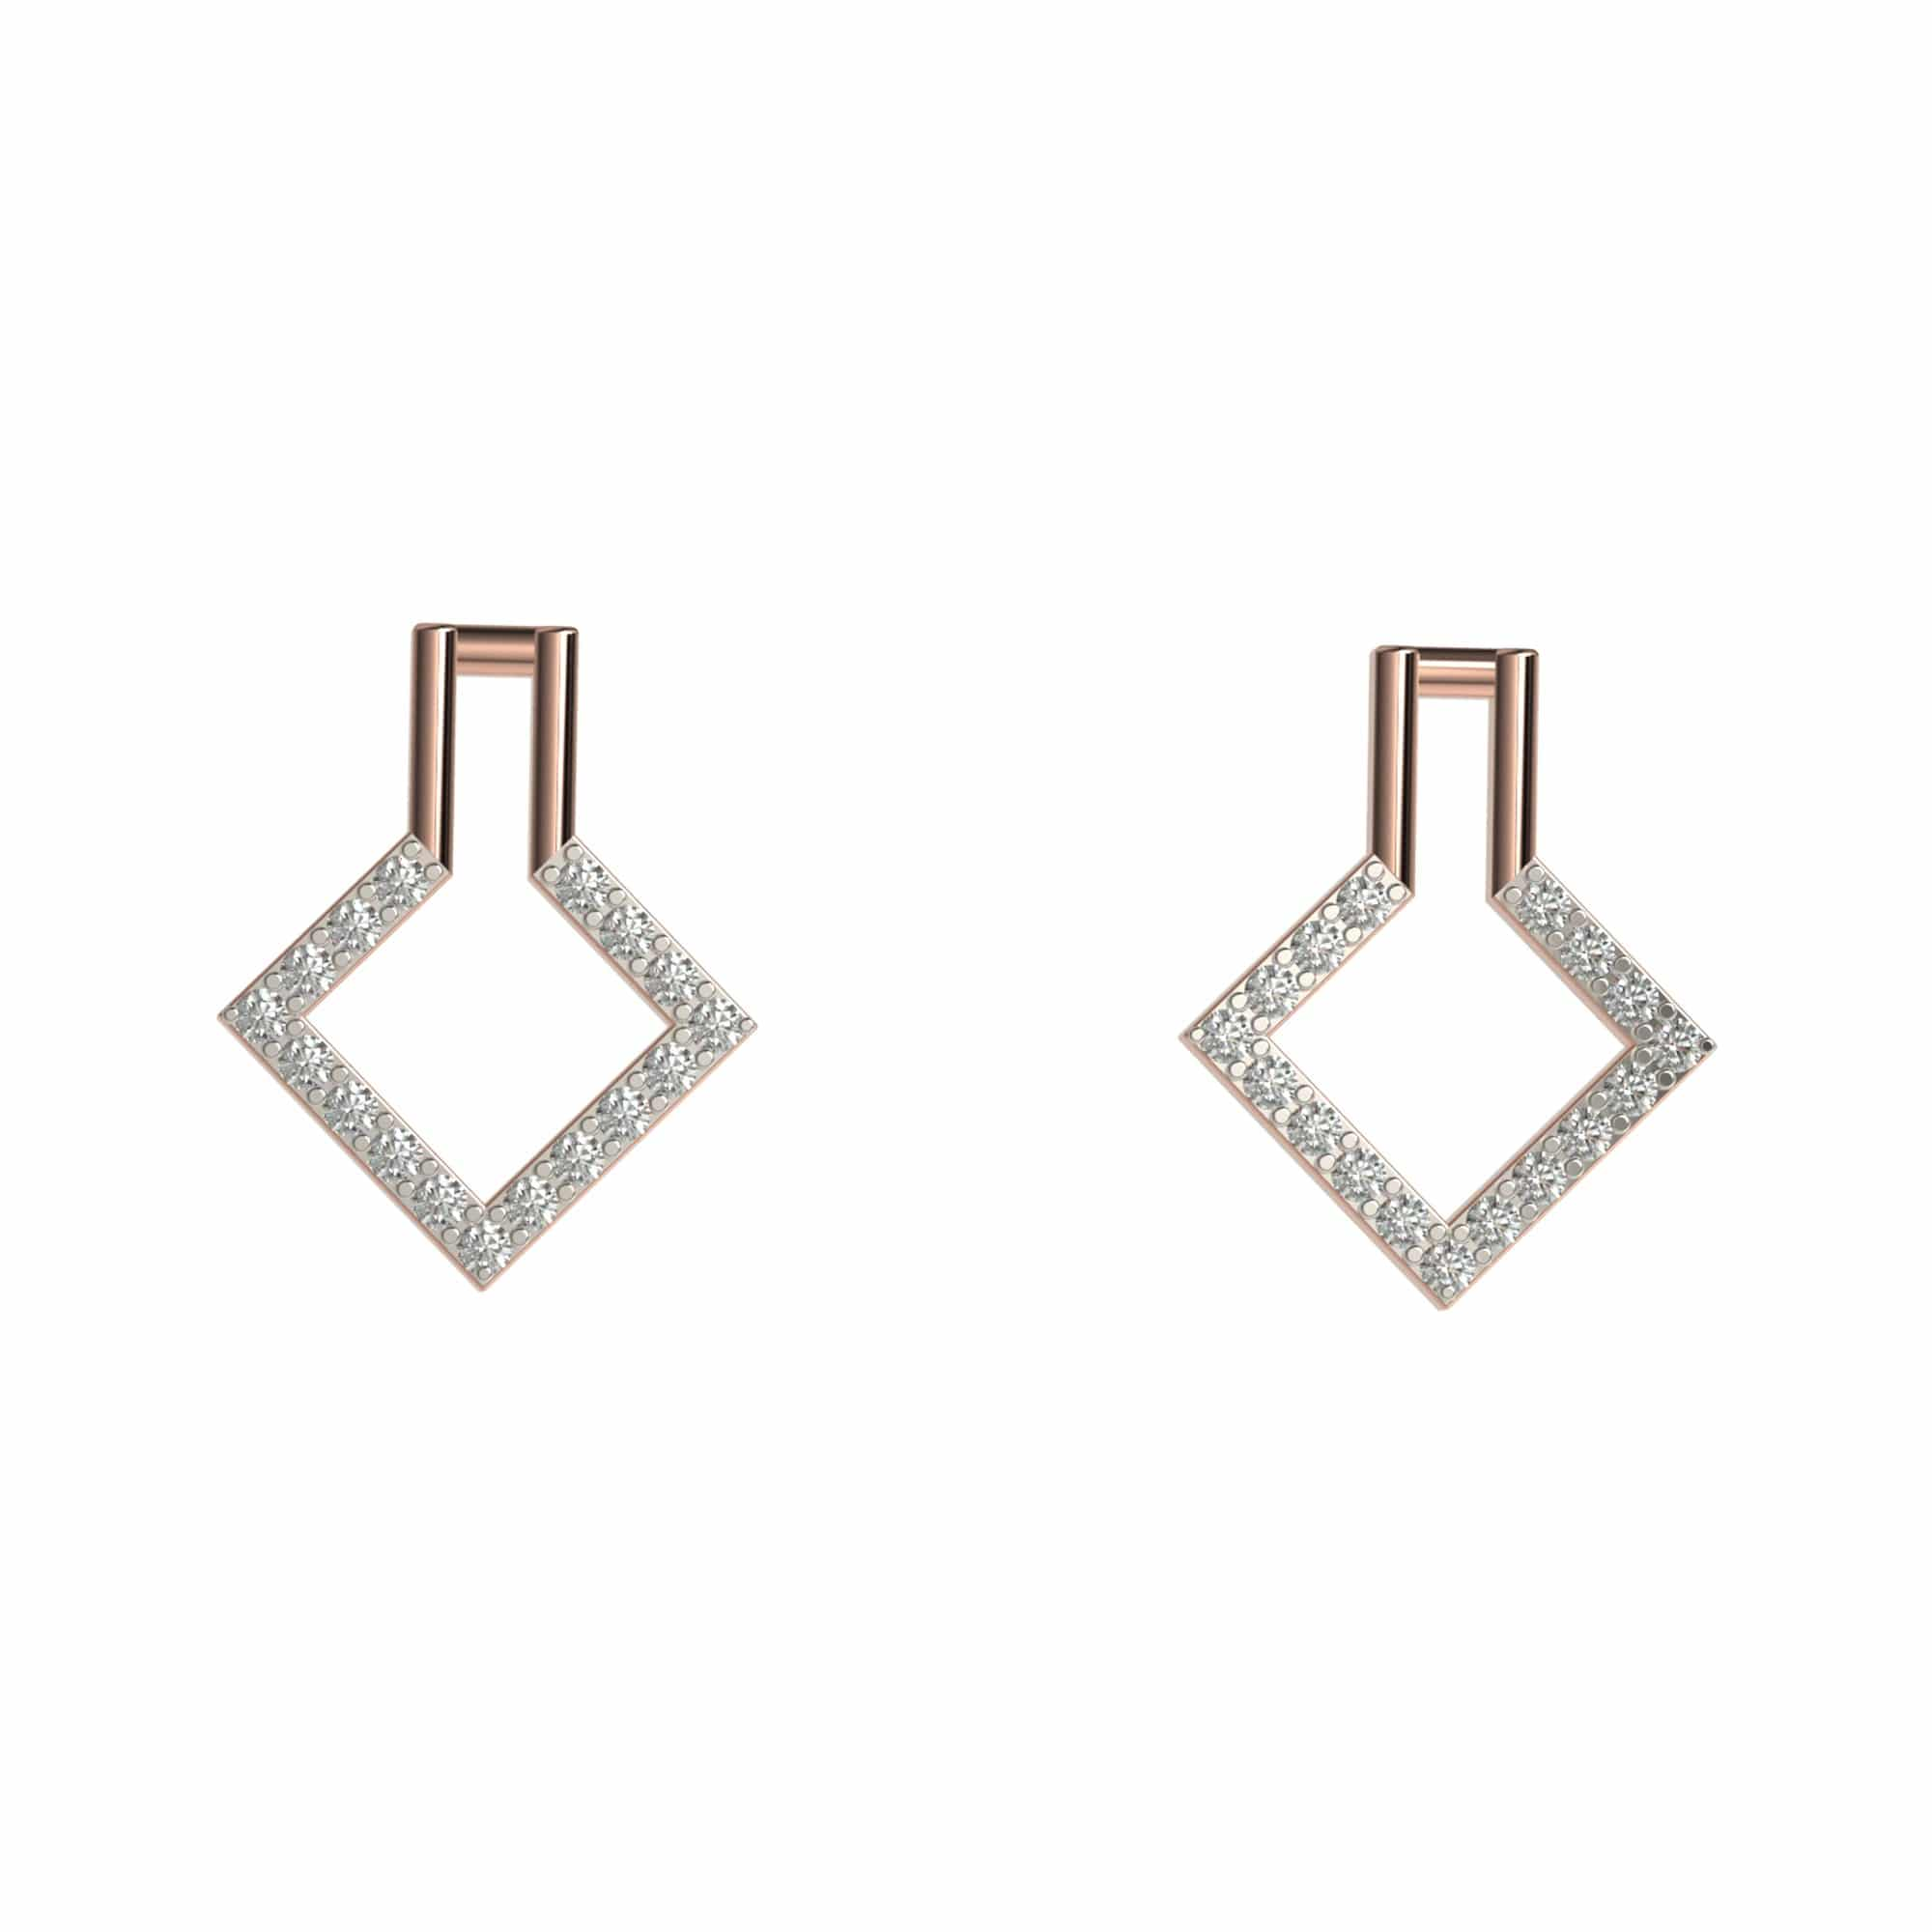 Inverted Diamond Earrings